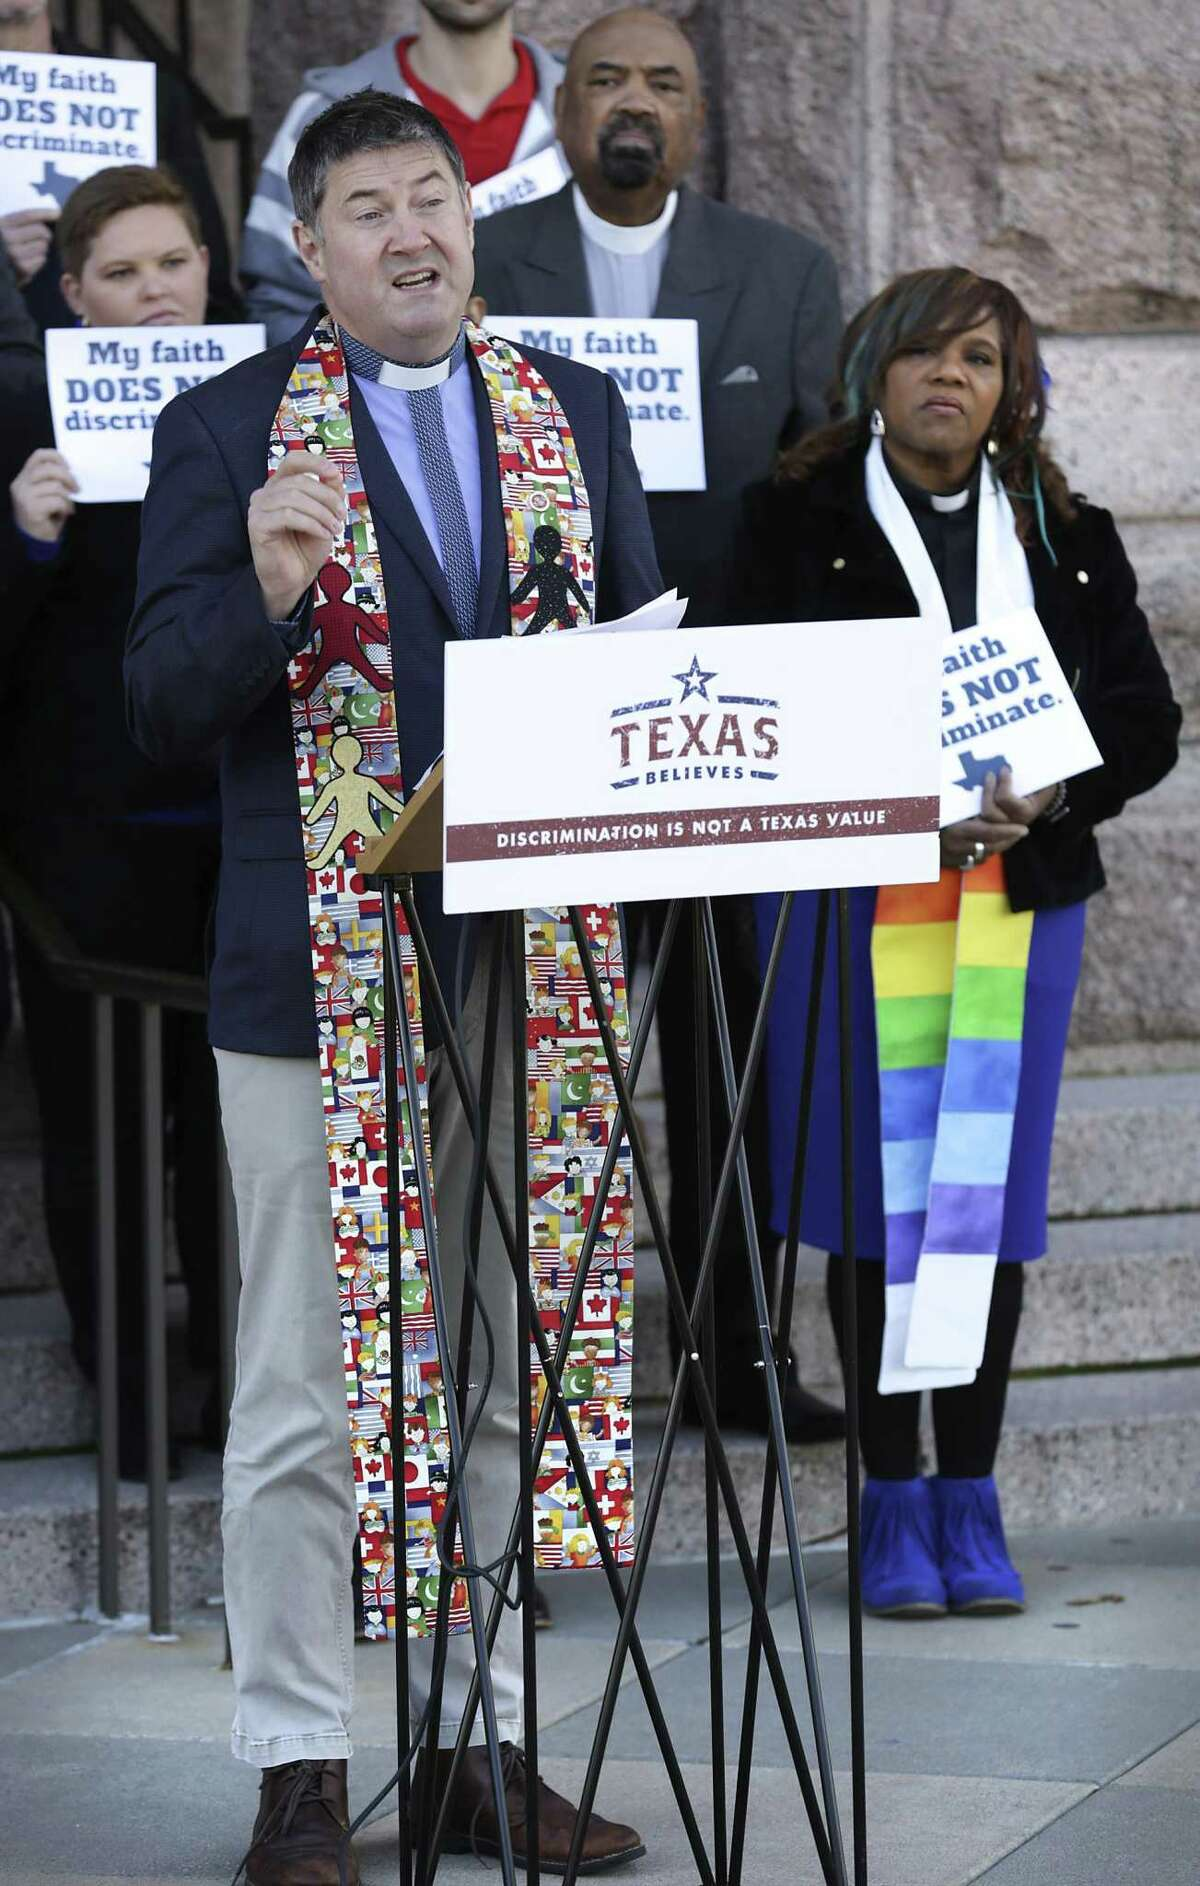 Rev. Andries Coetzee of University Presbyterian Church in San Antonio speaks as faith leaders from Austin, San Antonio, and Dallas gather to speak against the growing efforts to turn religion into a license to discriminate, and calling for laws that treat everyone including LGBTQ Texans, with equality, fairness and respect, at the State Capitol in Austin, TX, on Wednesday, Feb. 20, 2019.